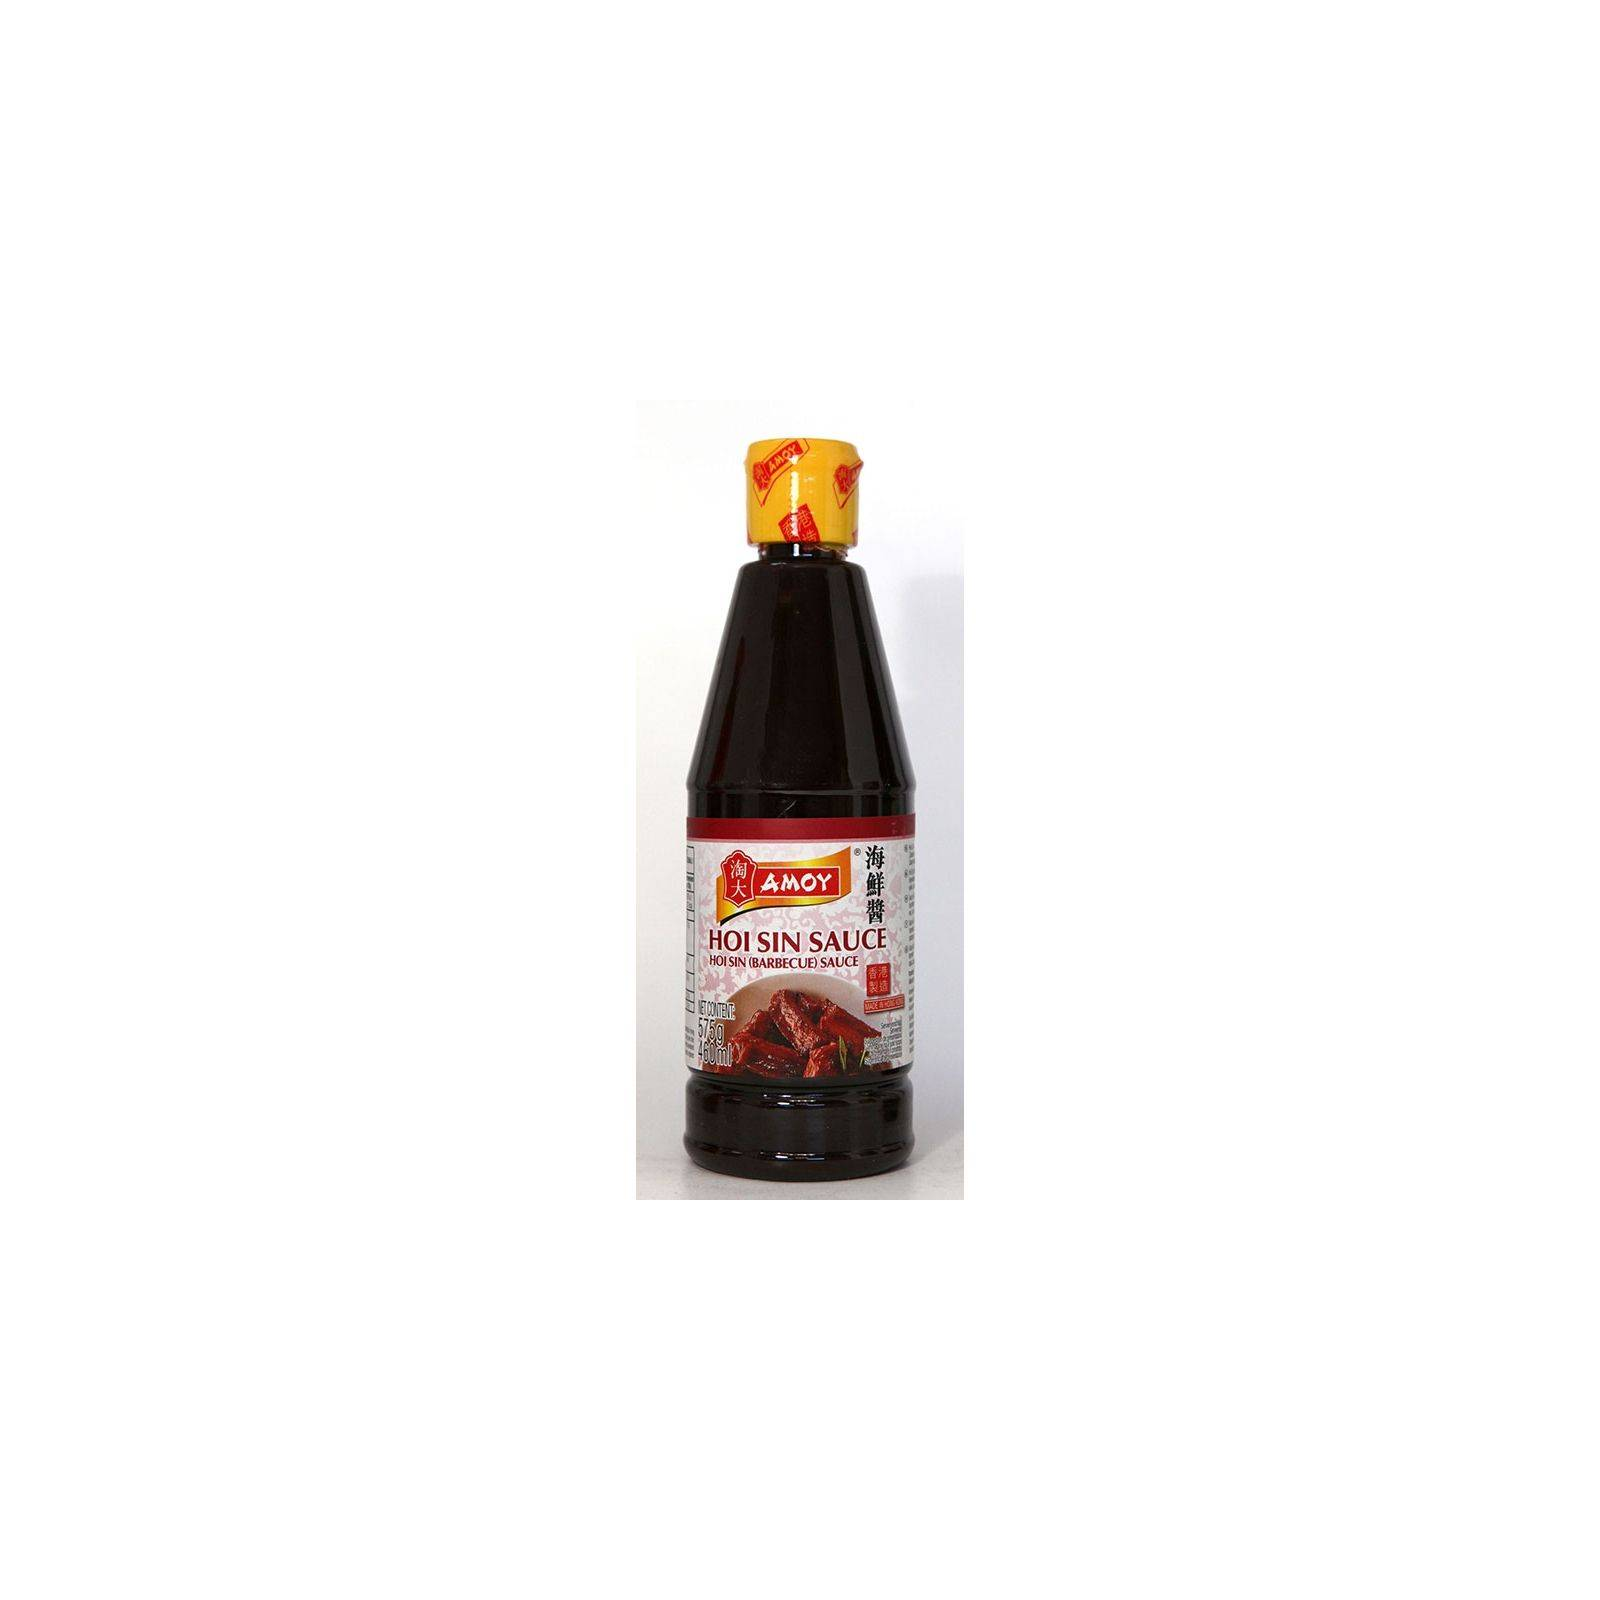 Asia Marché Sauce Hoi Sin ( sauce Barbecue ) 575g Amoy